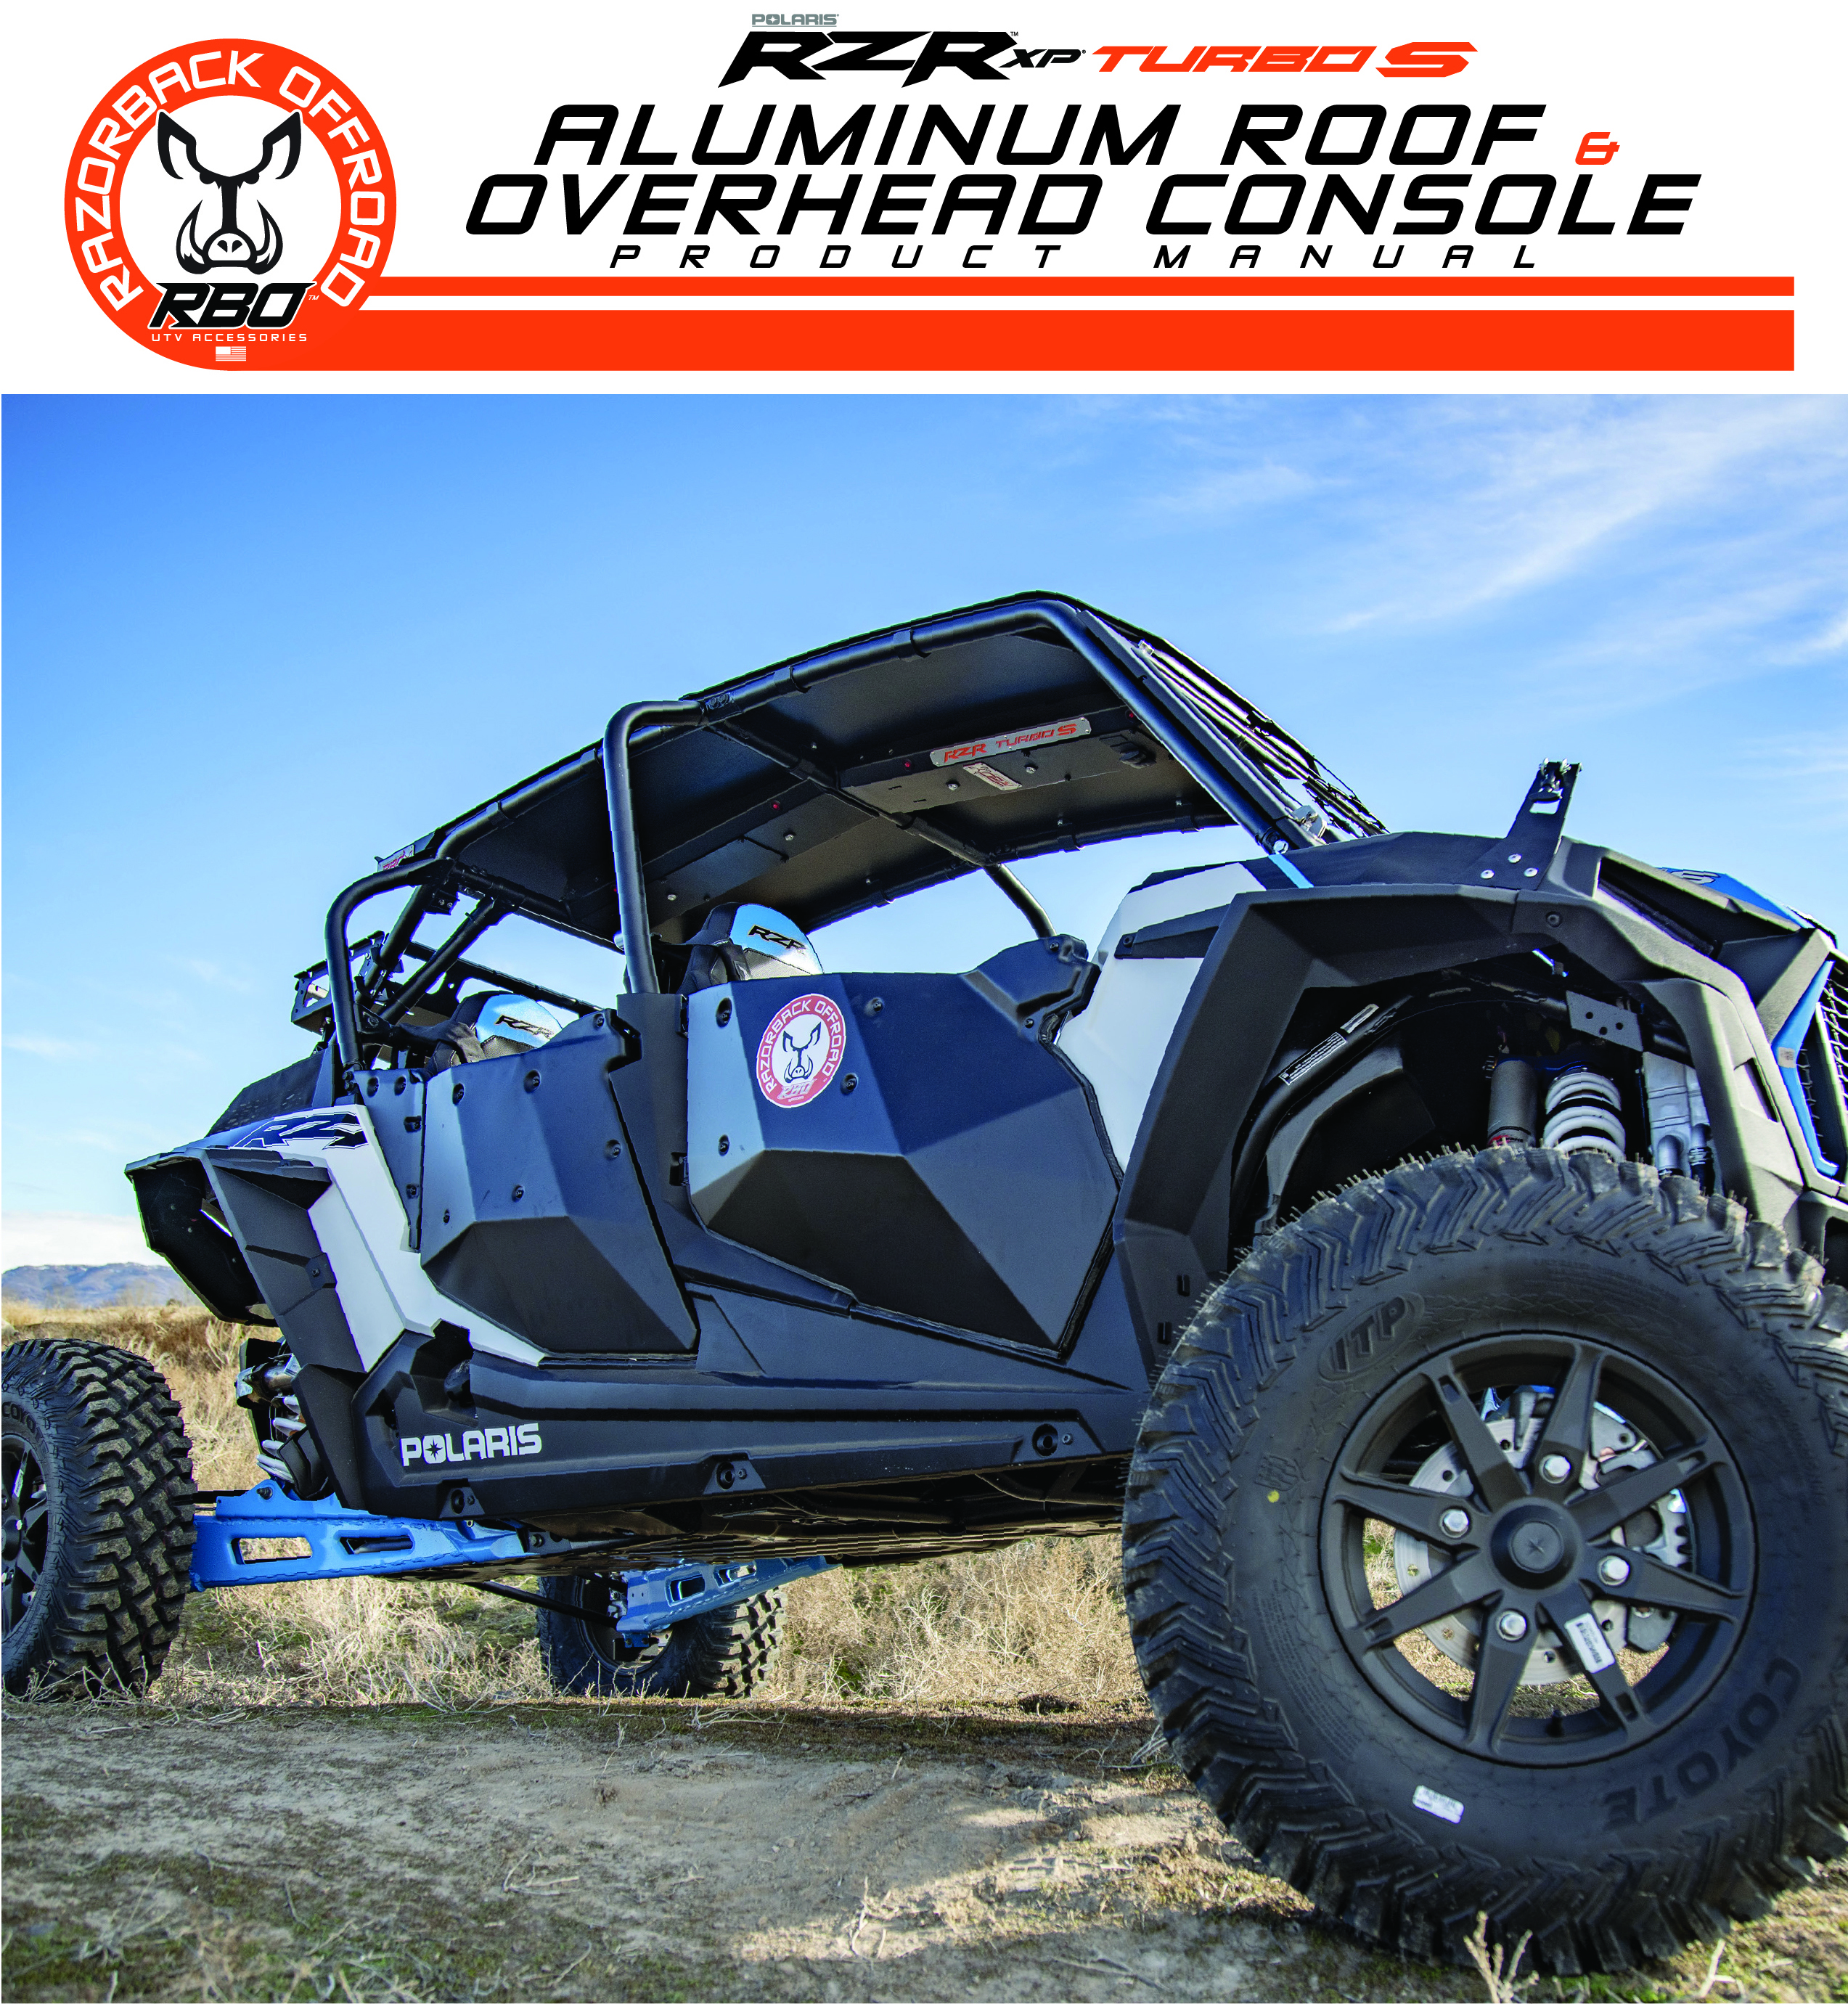 Aluminum Roof and Overhead Console Accessories Polaris RZR Turbo S Custom UTV